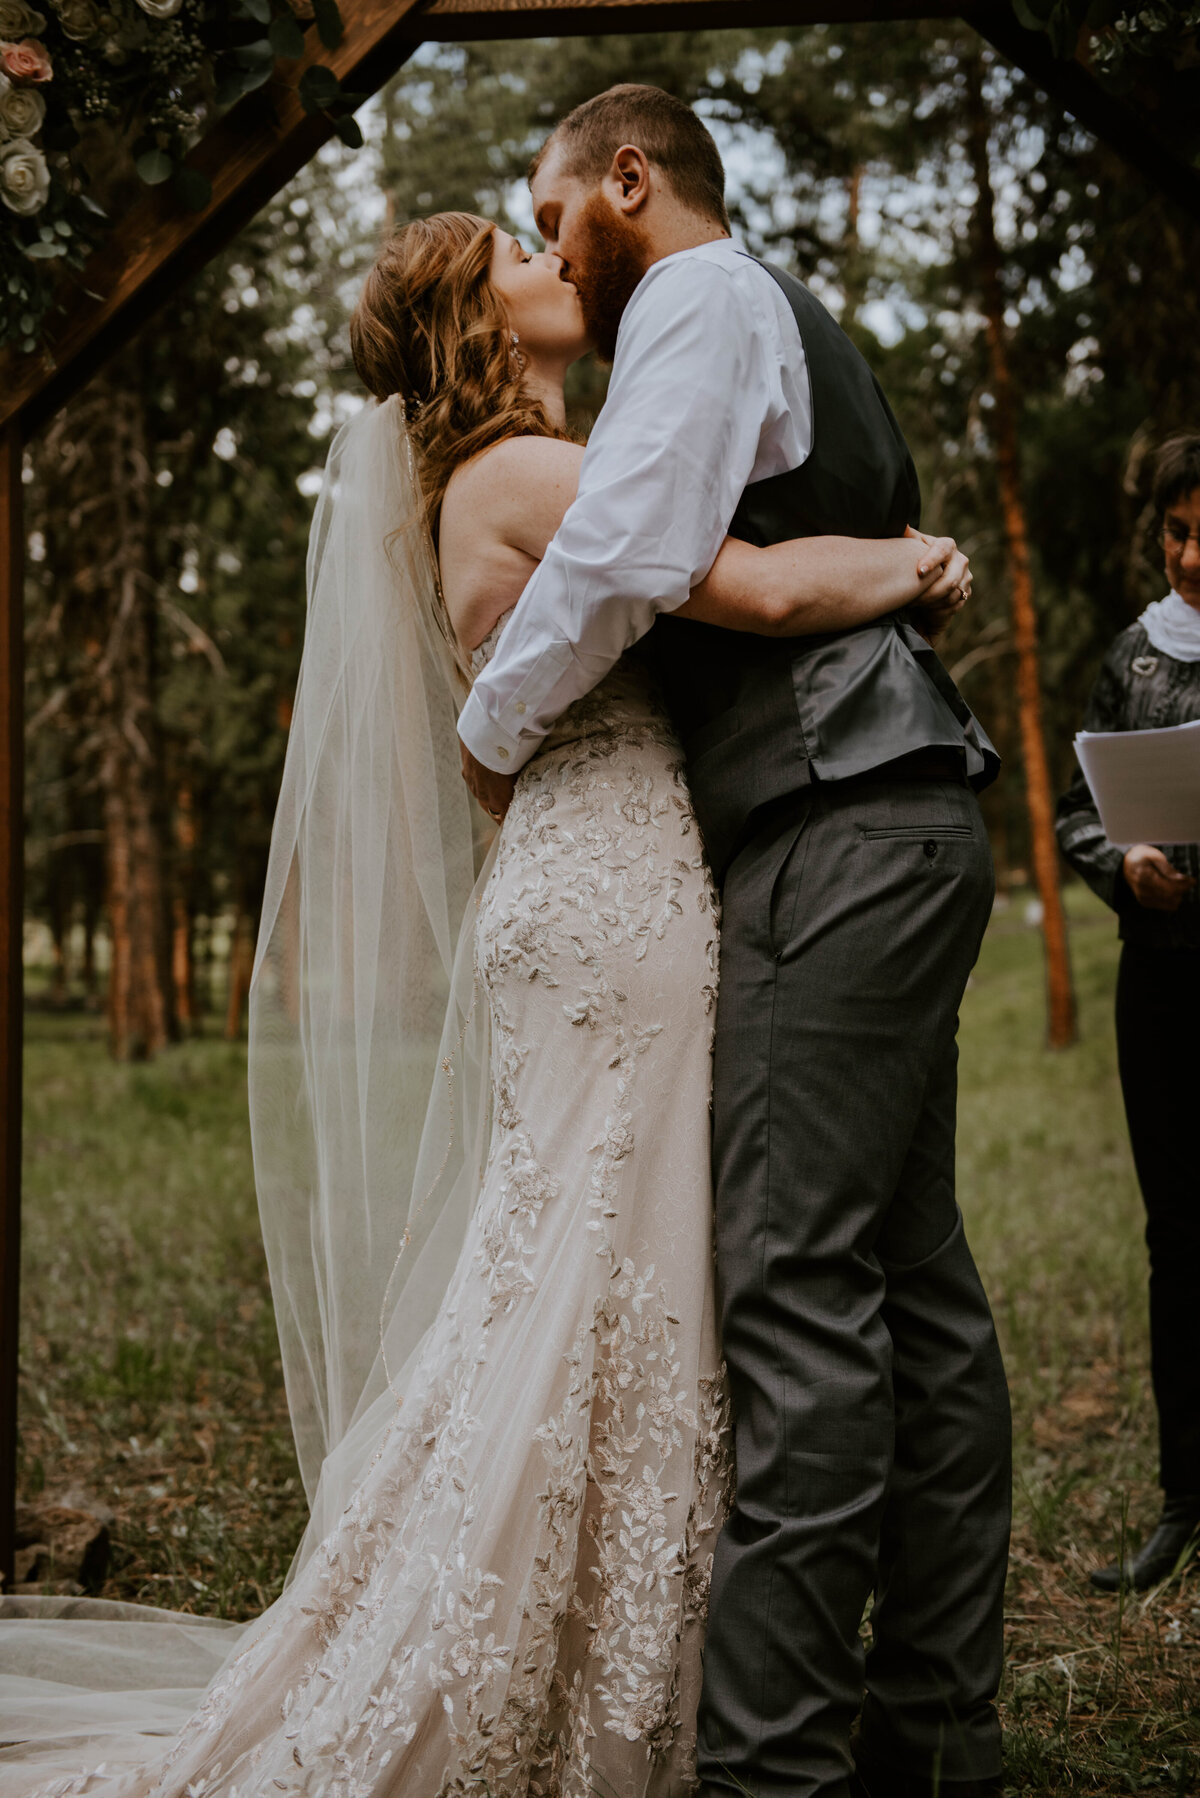 ochoco-forest-central-oregon-elopement-pnw-woods-wedding-covid-bend-photographer-inspiration2340